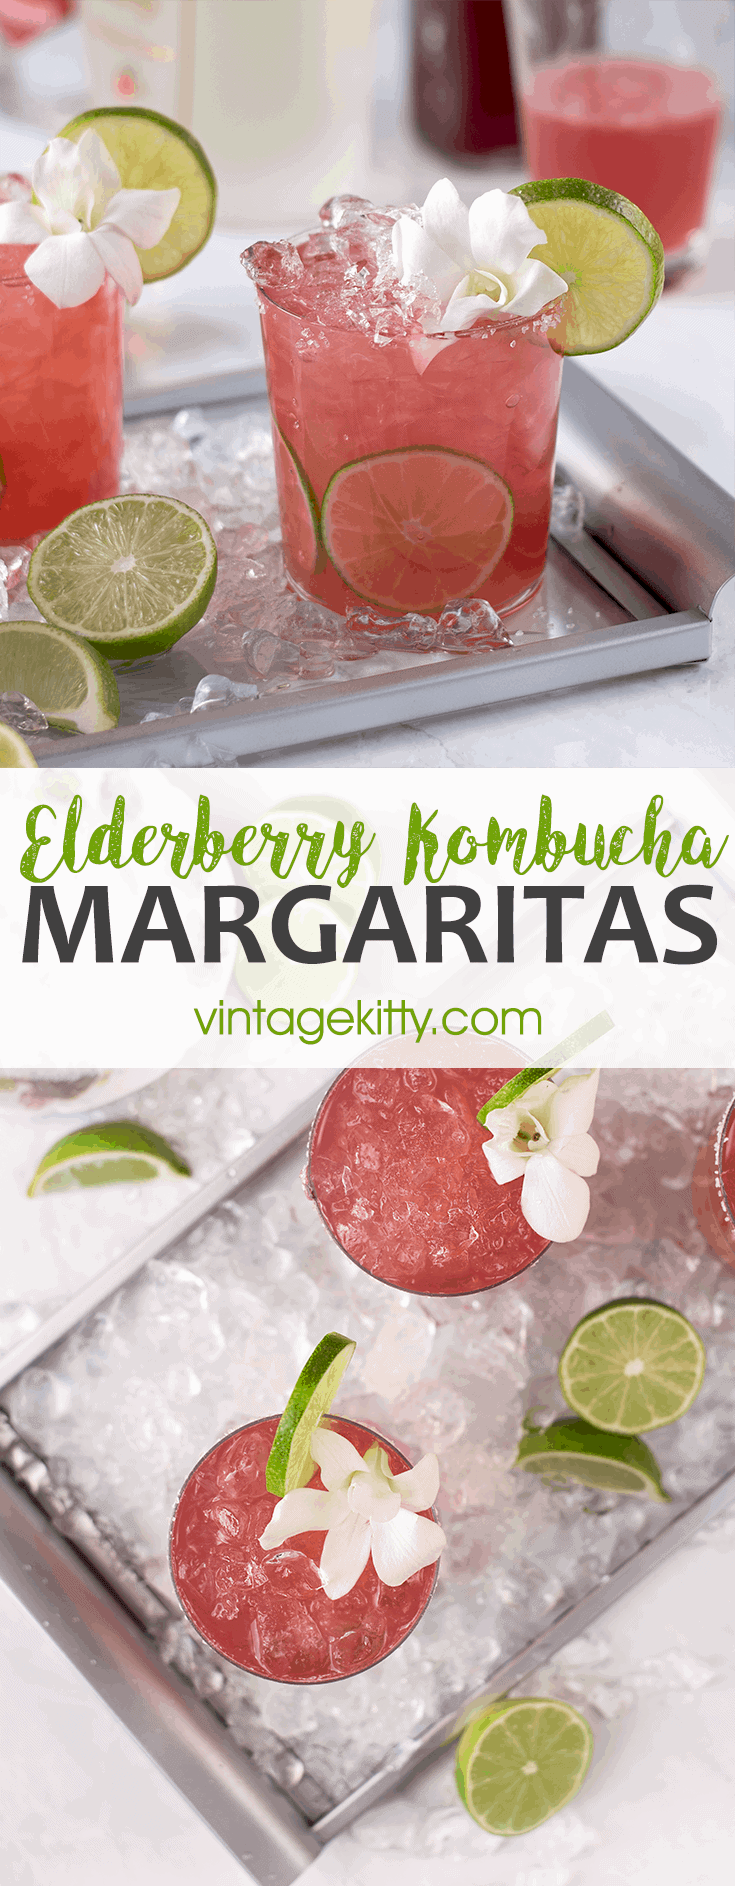 Why not give an anti-viral, probiotic boost to your cocktail hour? Kombucha Margaritas are the newest twist on the classic cocktail! Fizzy, sweet and sour! #kombucha #margaritas #cocktails #cocktailhour